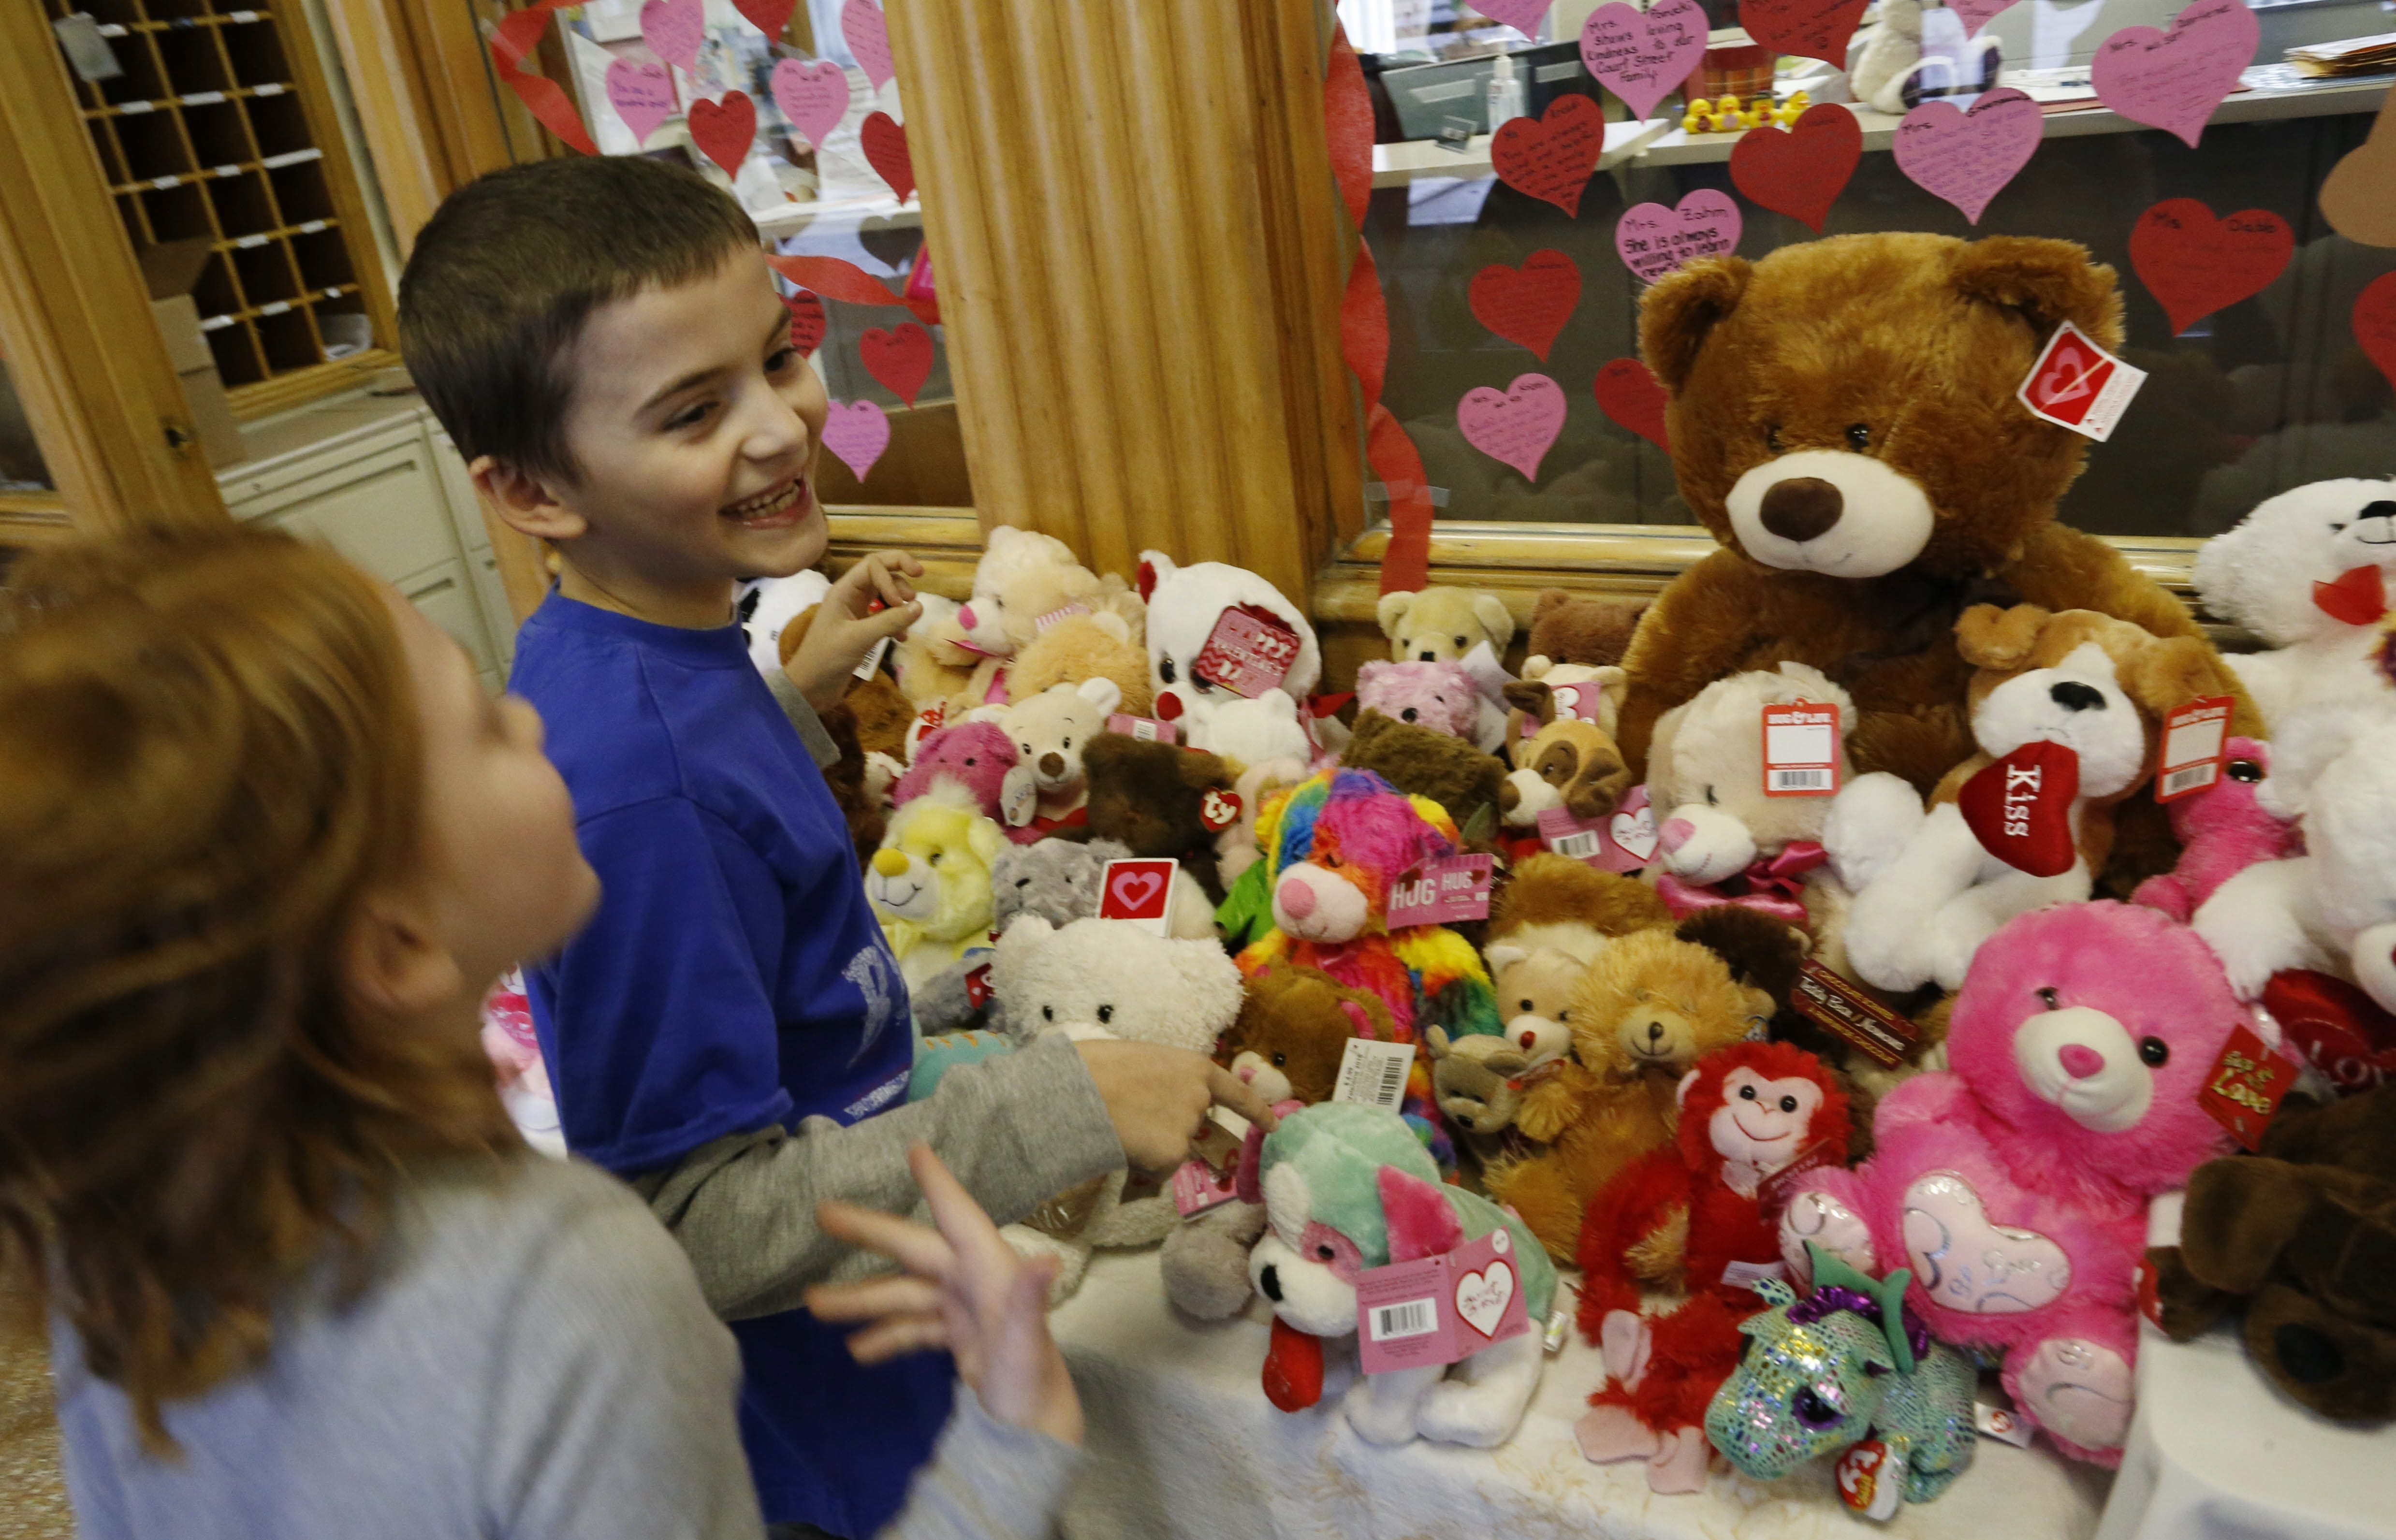 Ty Spinelli and Sarah Amborski, 8-year-old third-grade students at Court Street Elementary School in Lancaster, sort teddy bears Tuesday that students collected to donate to Women & Children's Hospital.